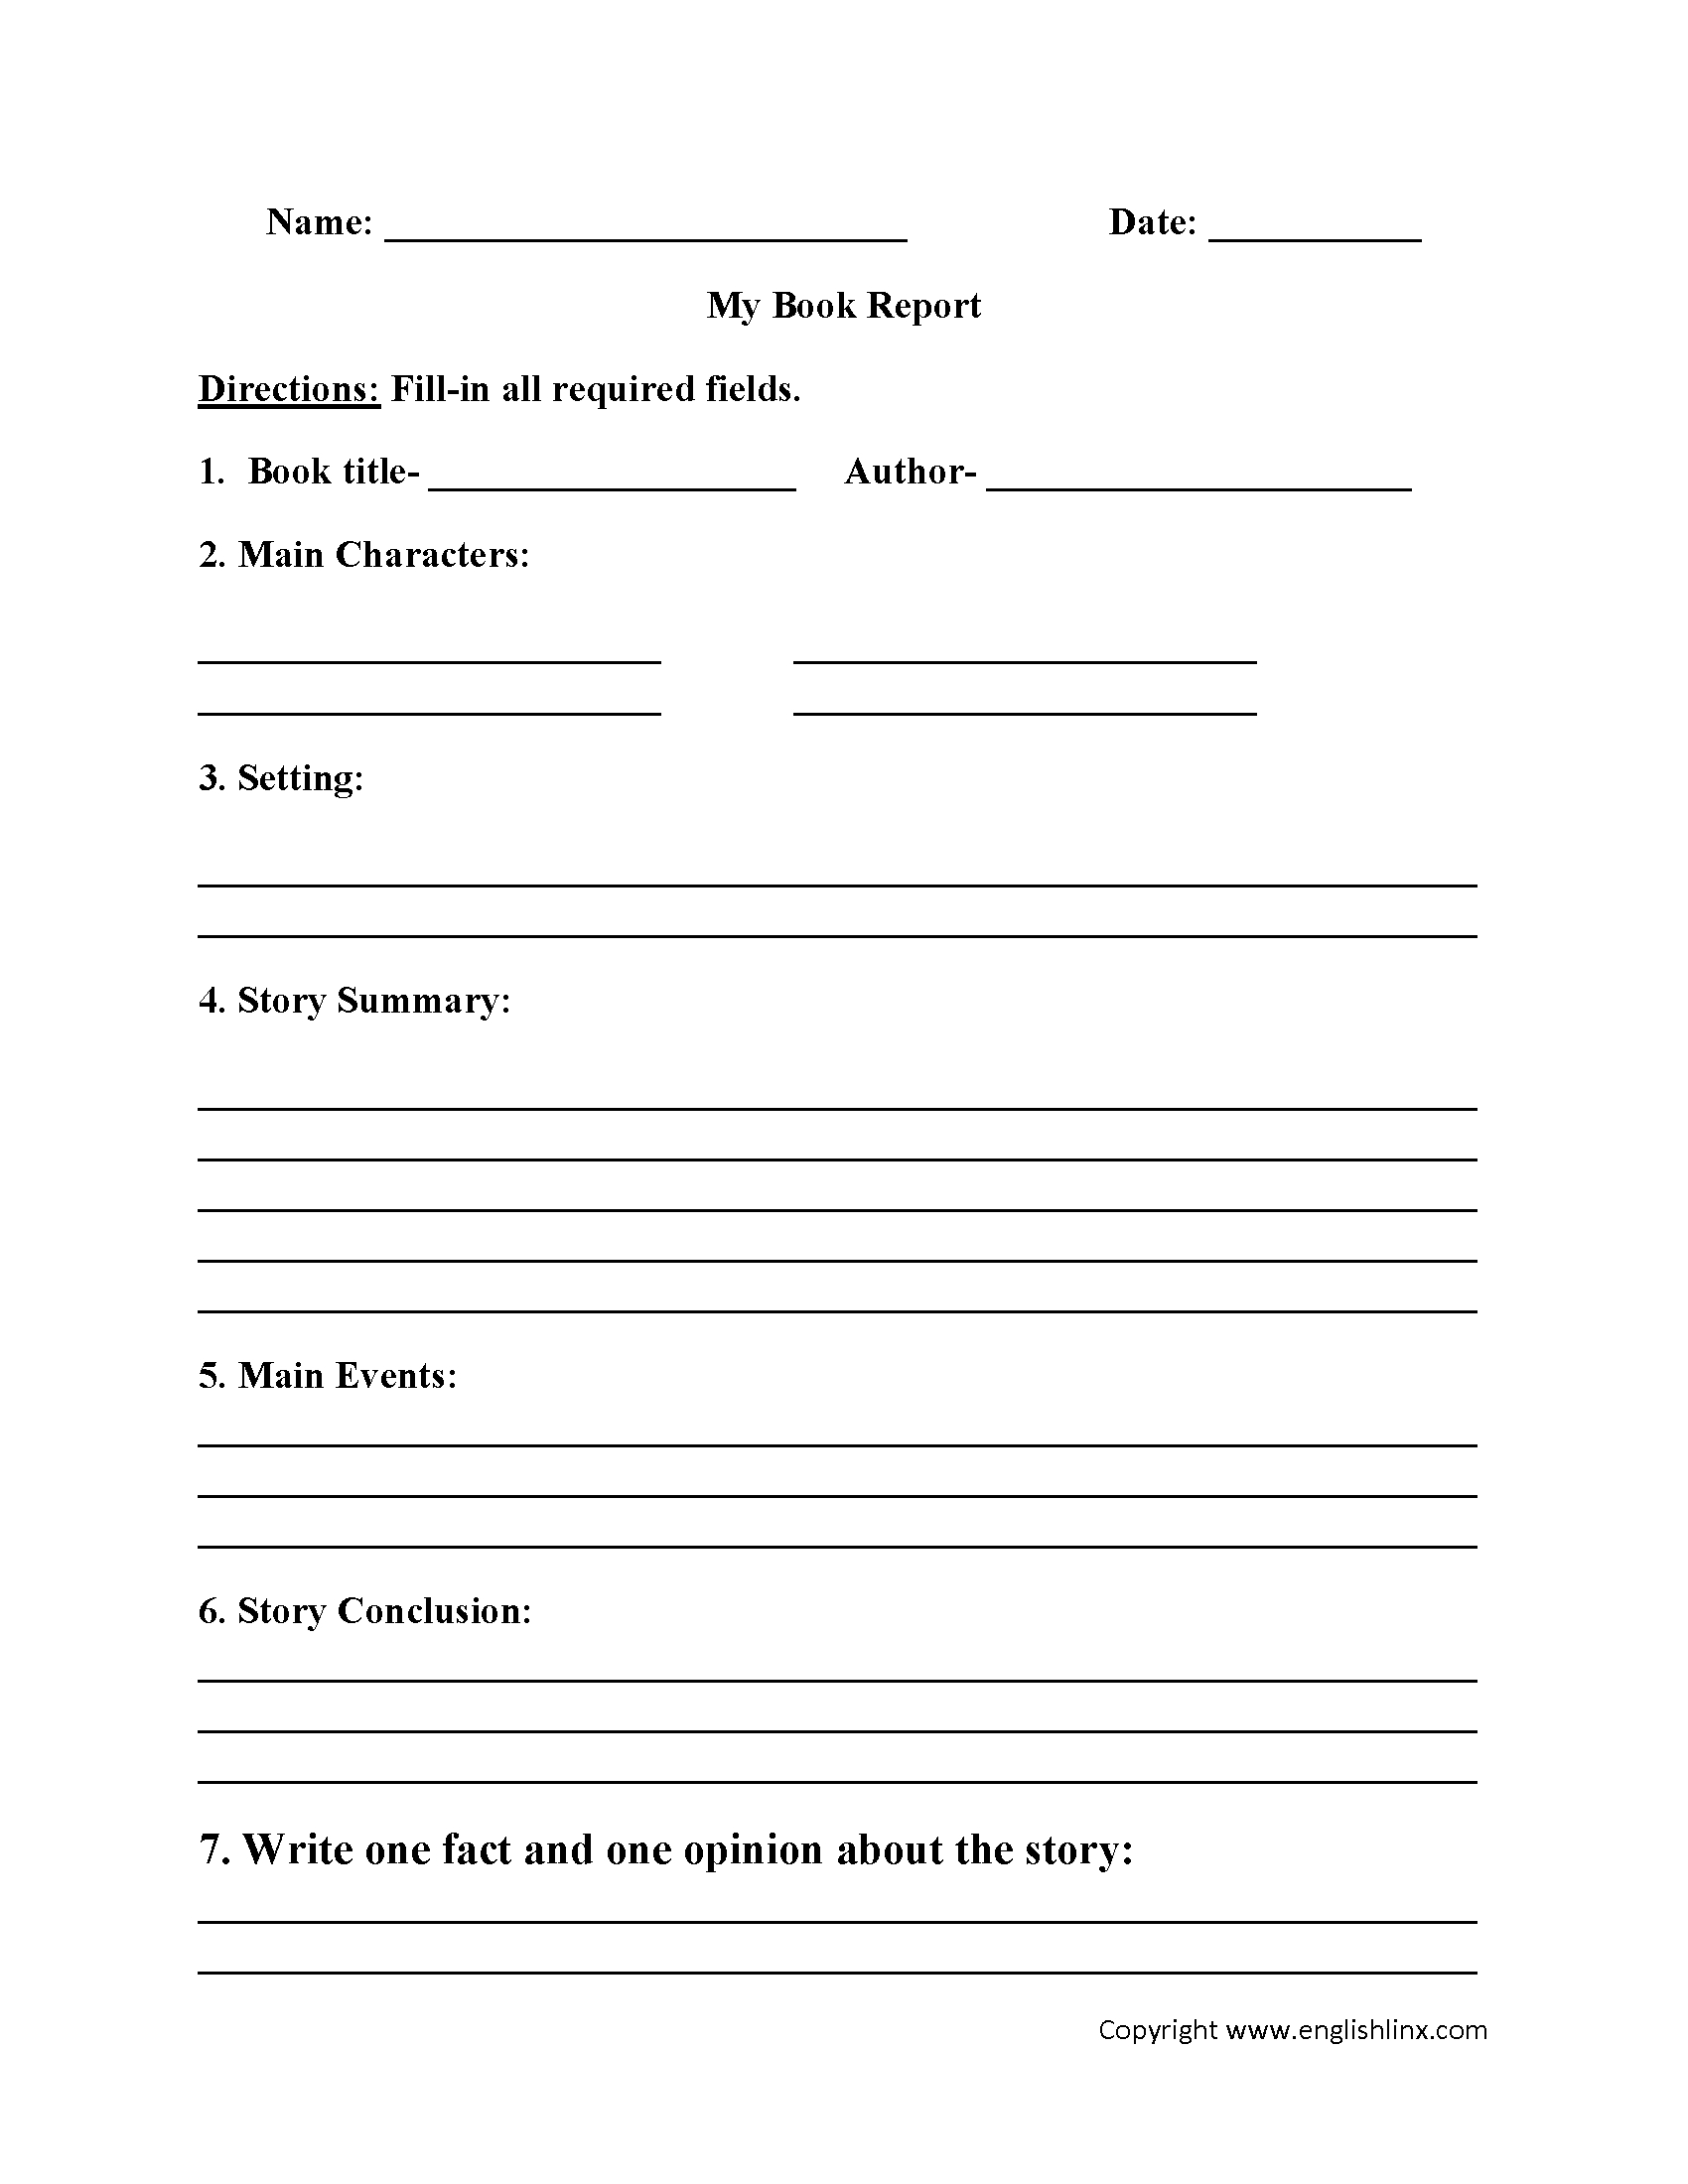 Englishlinx   Book Report Worksheets - Book Report Template Free Printable